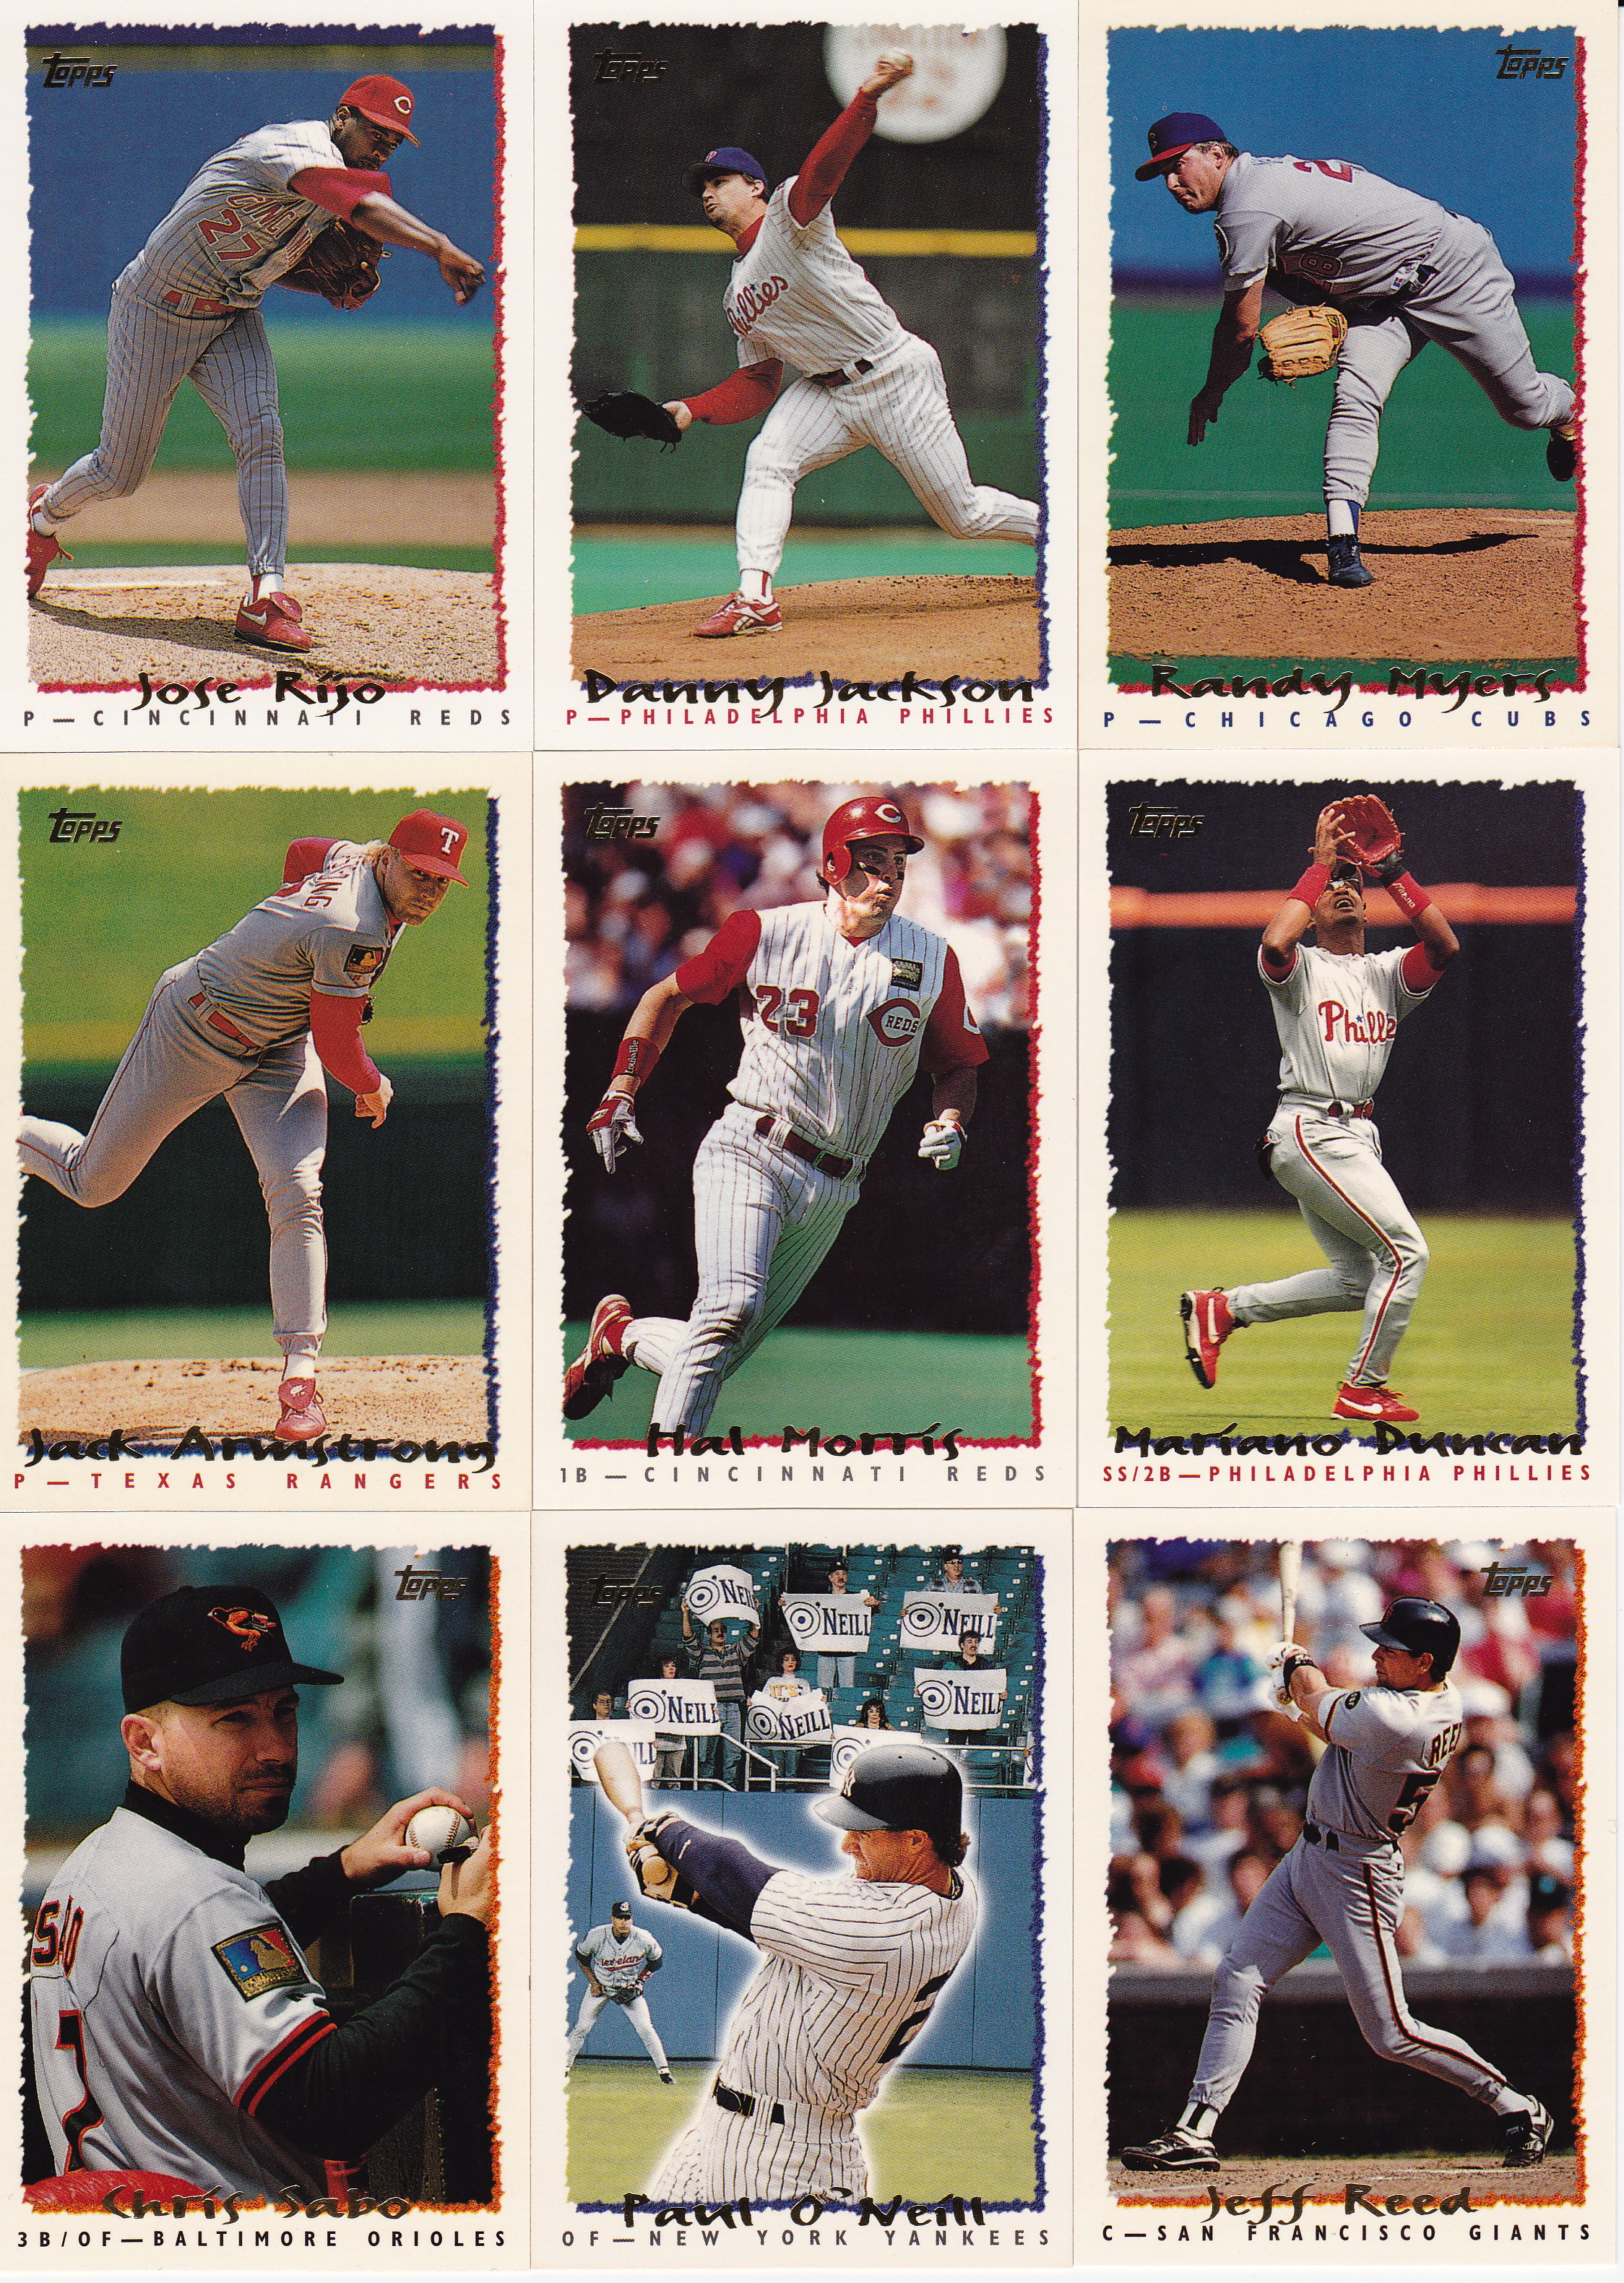 865a42dea There are also some 1990 Reds ...